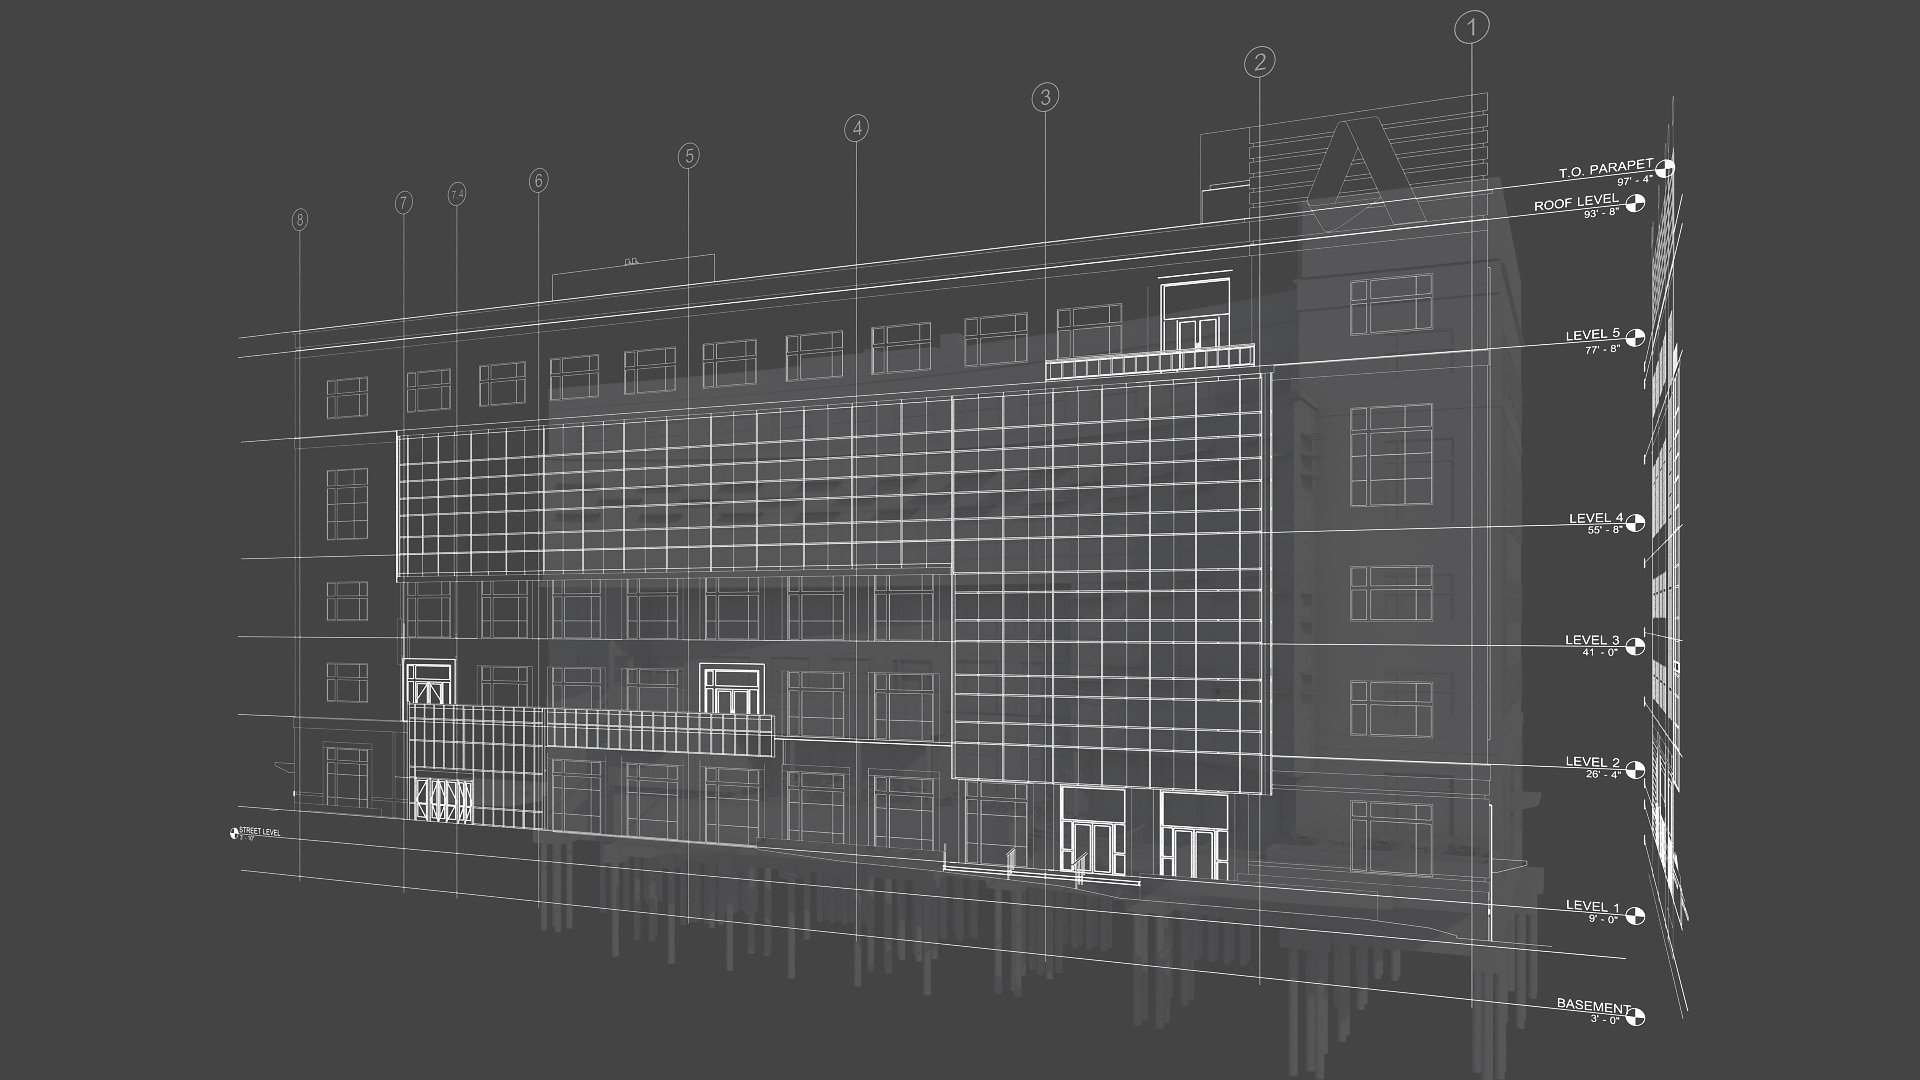 REVIT Built for Building Information Modeling | Autodesk